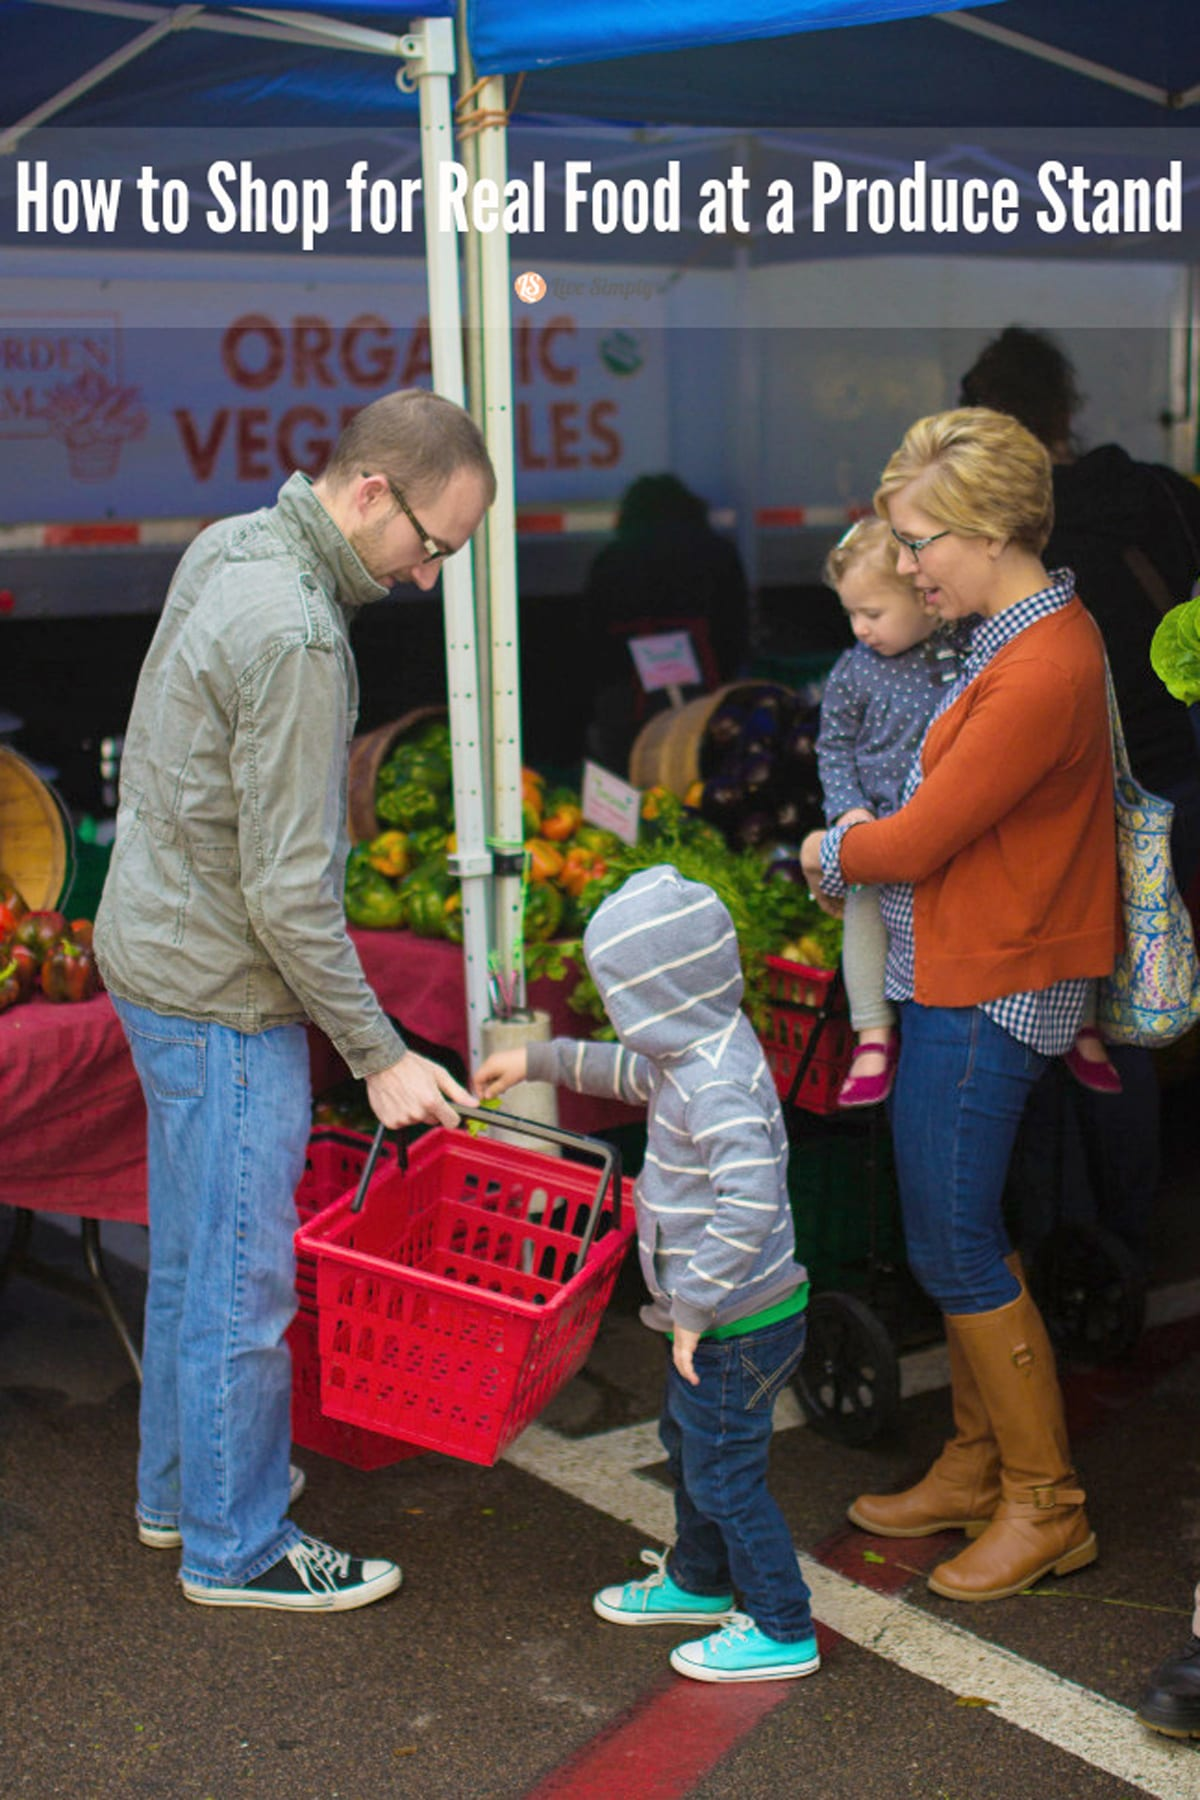 How to shop for real food at a produce stand